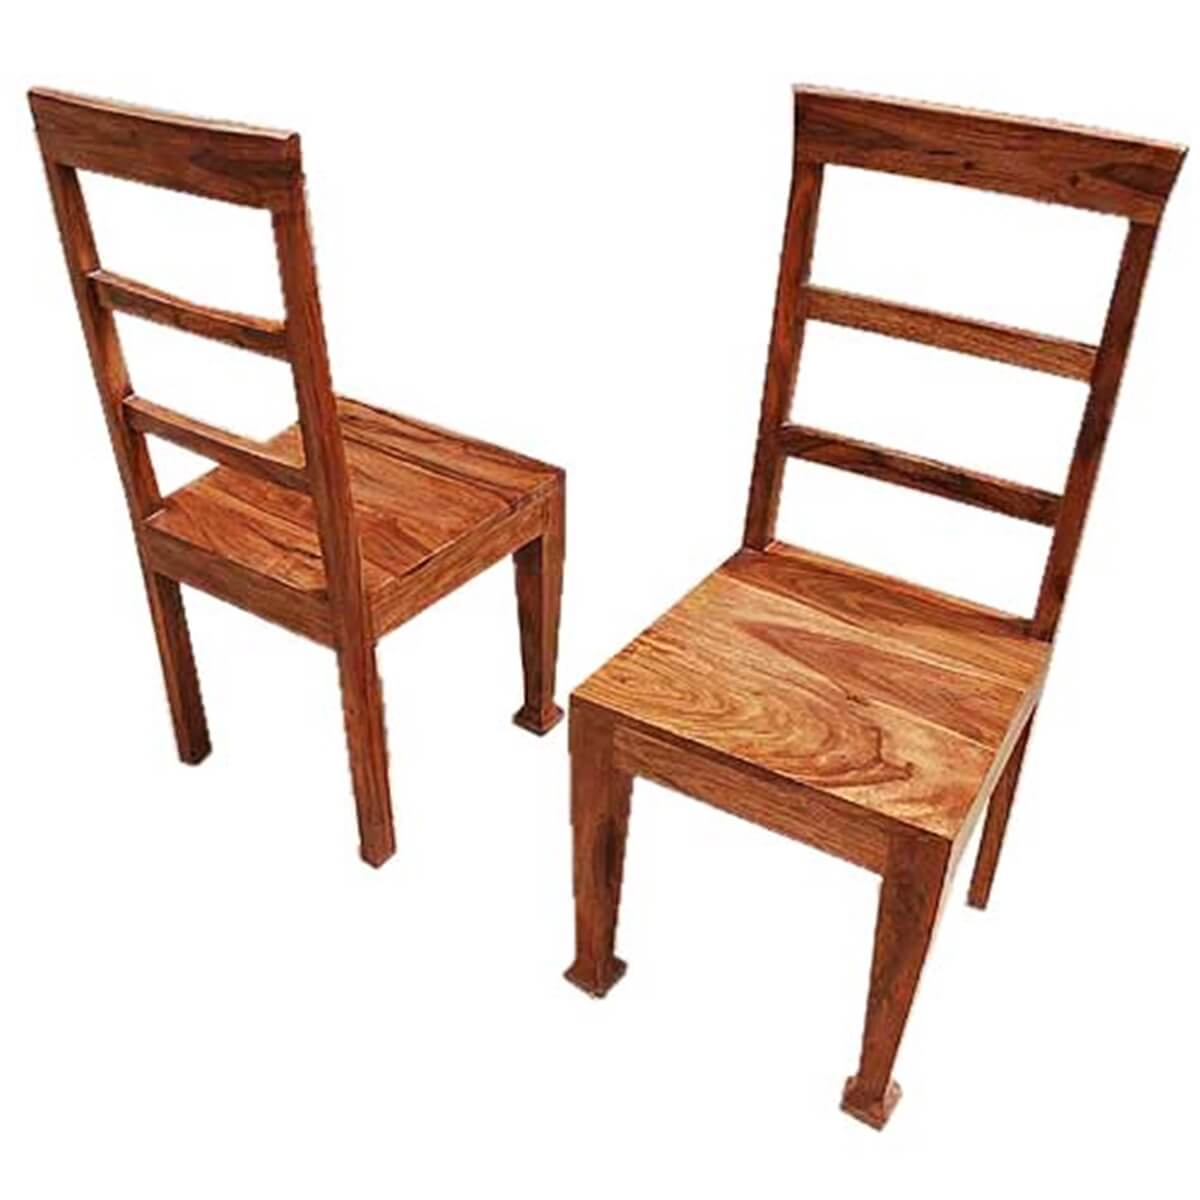 Rustic Dining Sets ~ Rustic furniture solid wood dining table chair set